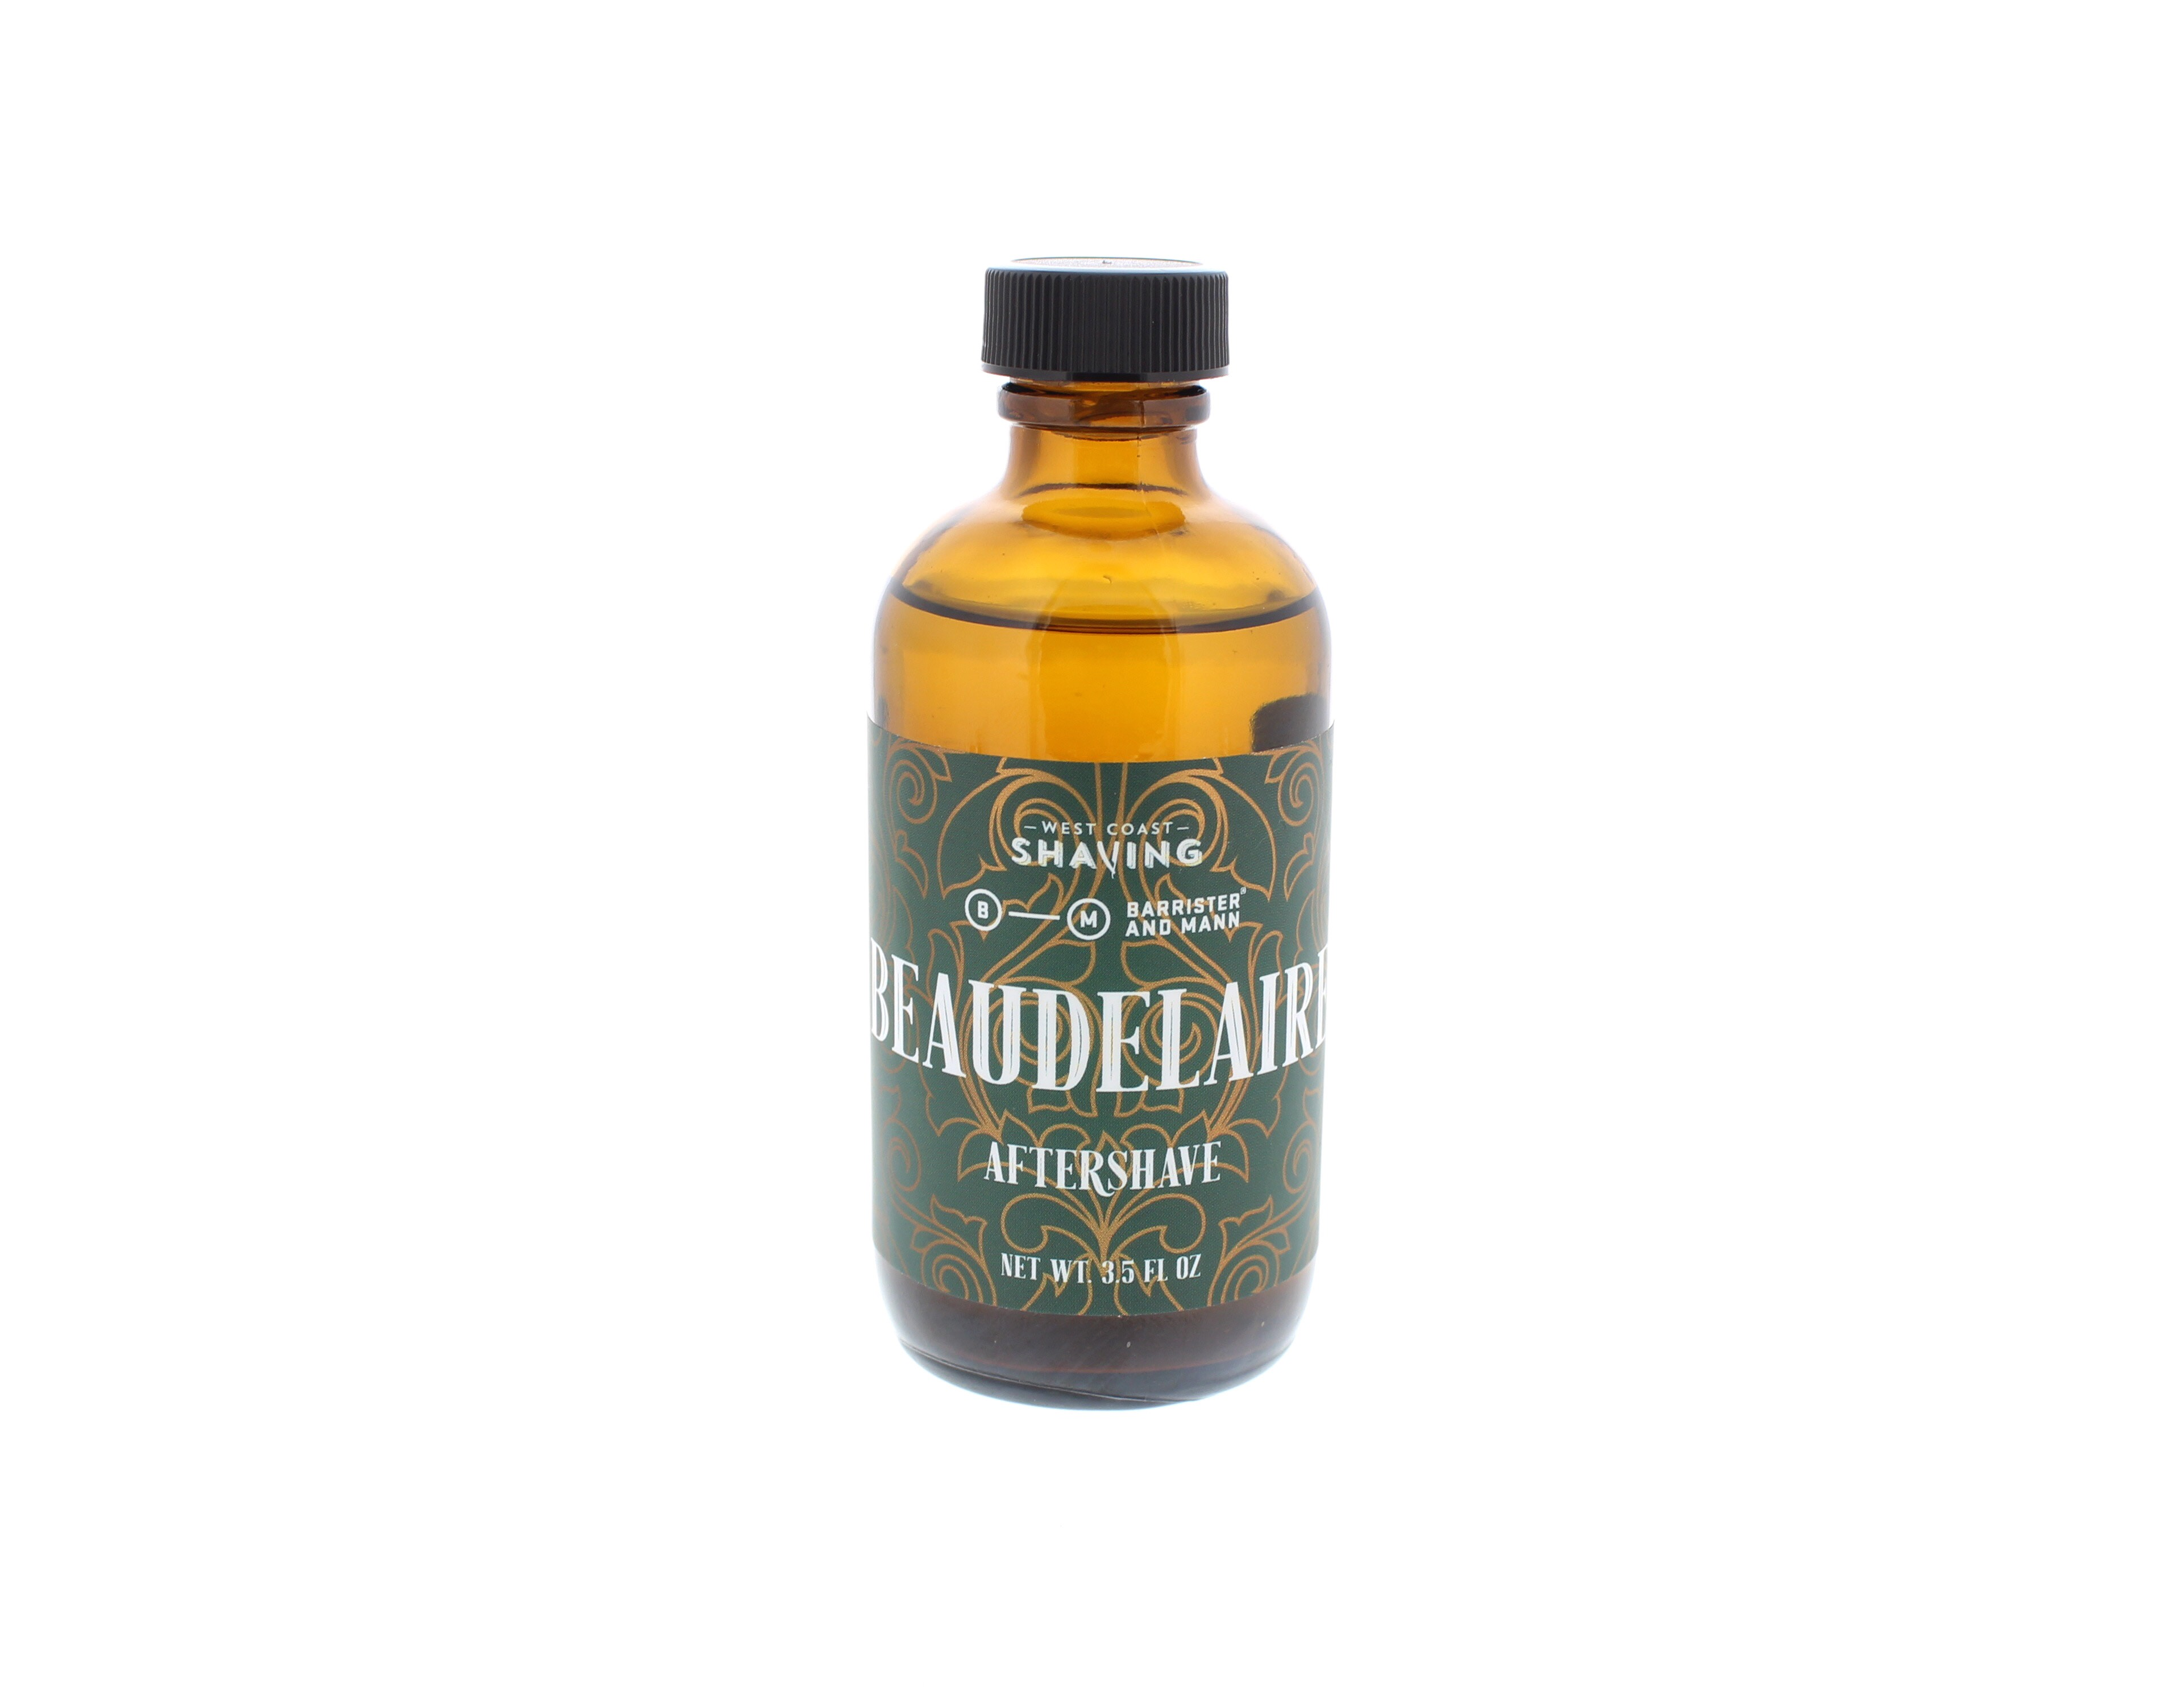 Barrister and Mann - Beaudelaire - Aftershave image